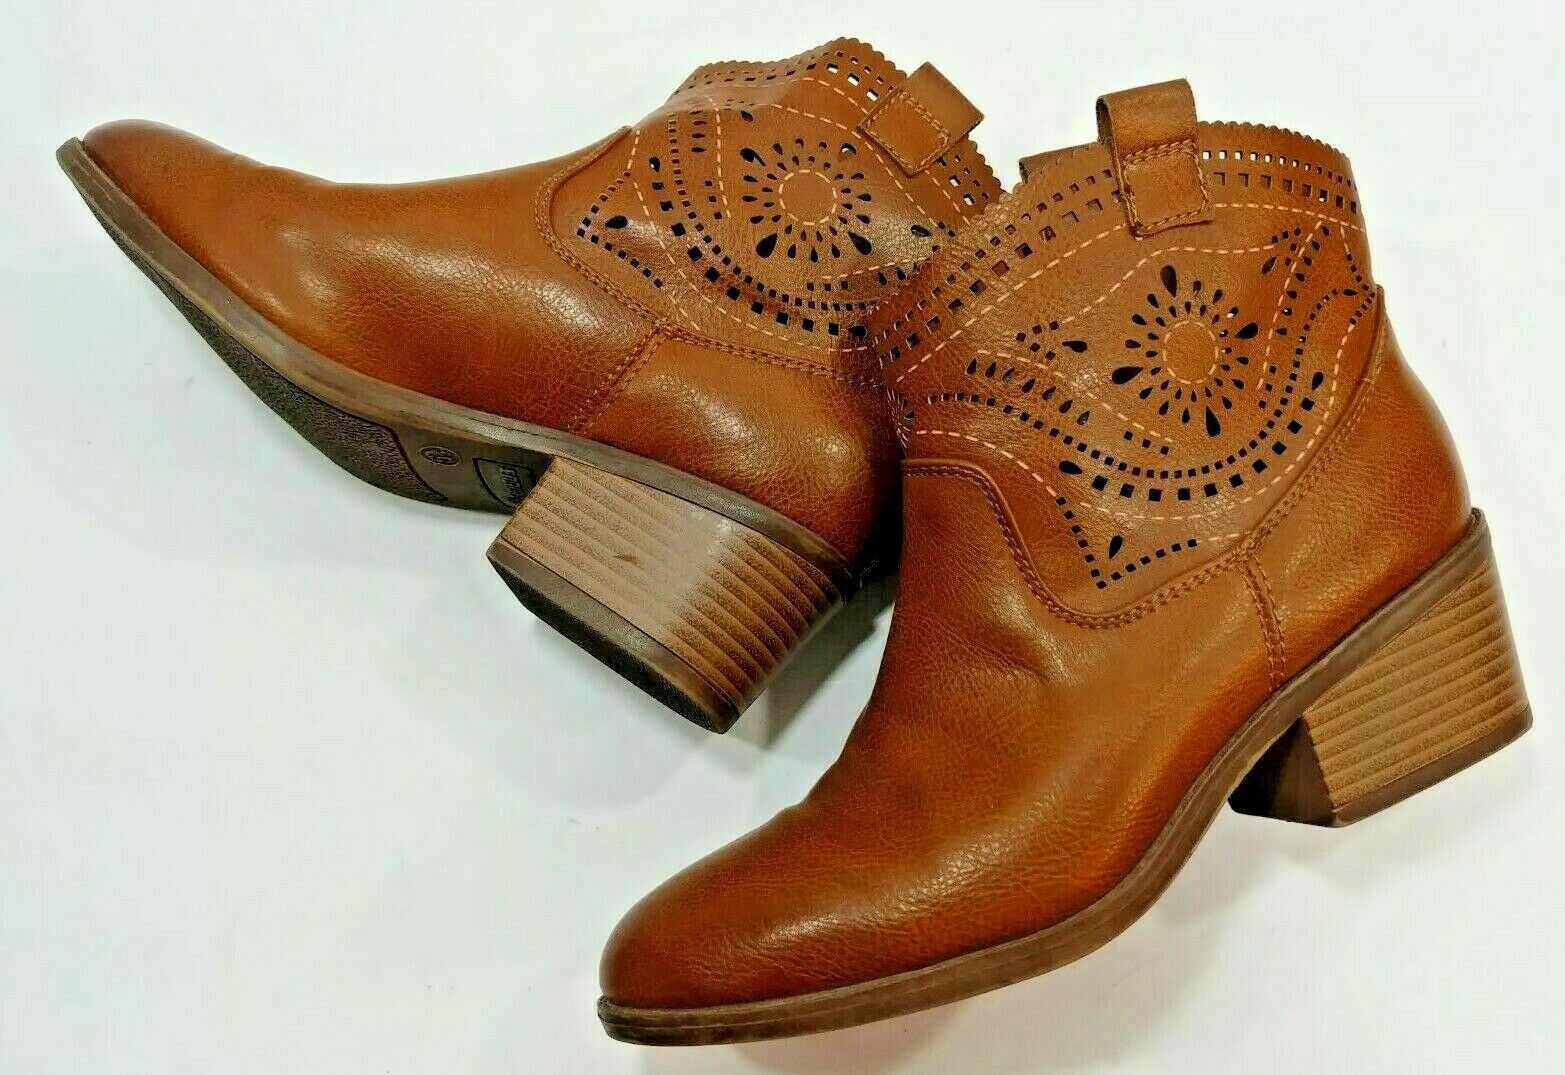 Fergalicious by Fergie Pull On Ankle Boots Booties Boho Brown shoes Women's 5.5M